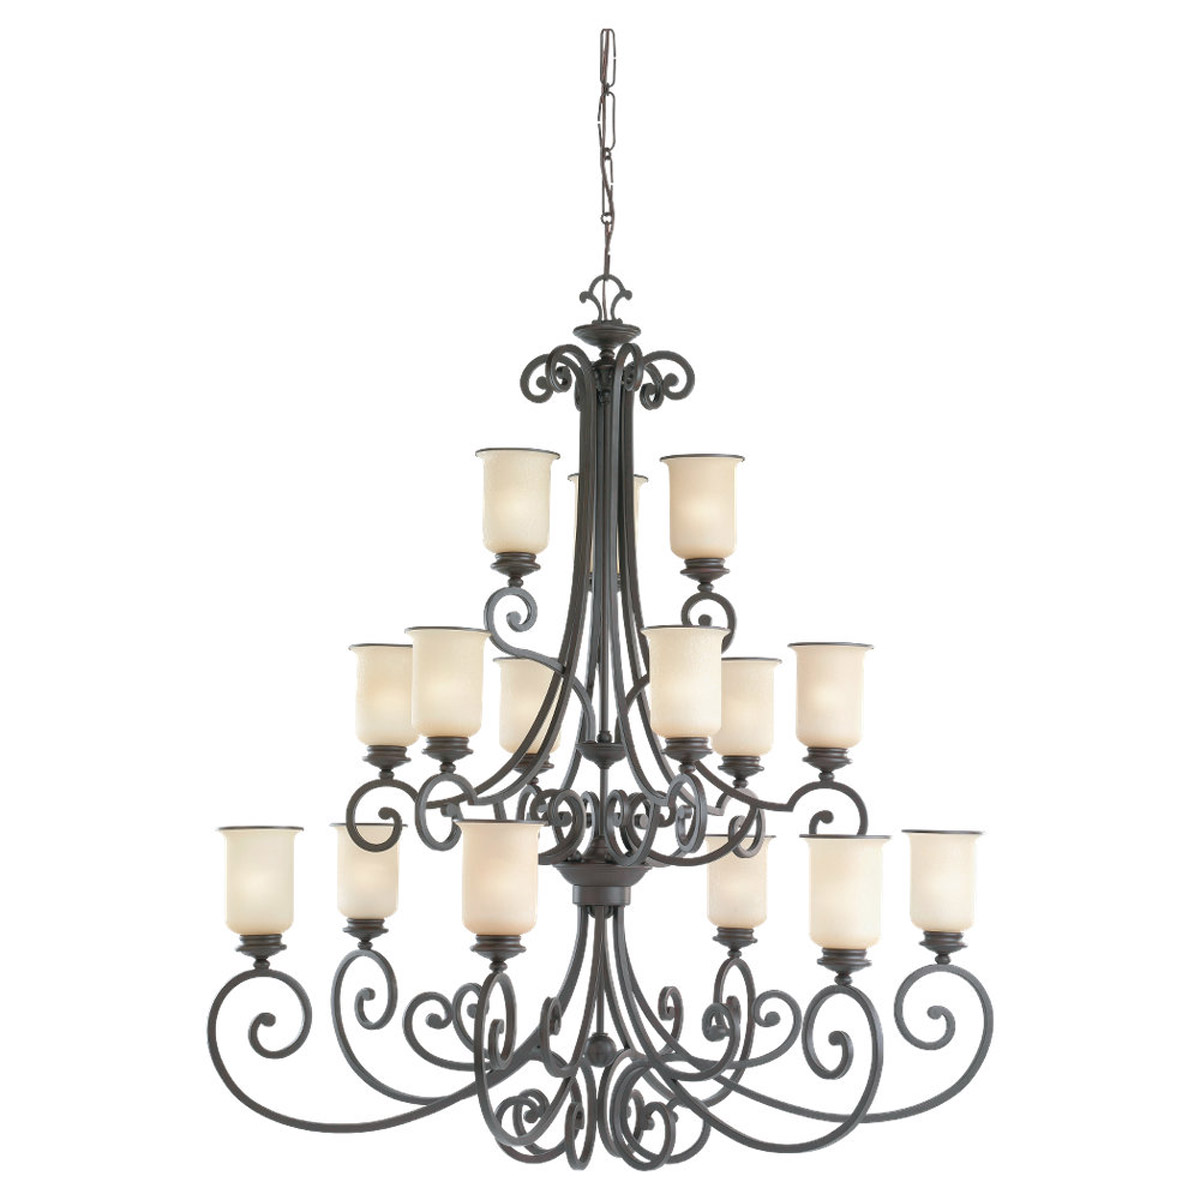 Sea Gull Lighting Acadia 15 Light Chandelier in Misted Bronze 31347BLE-814 photo